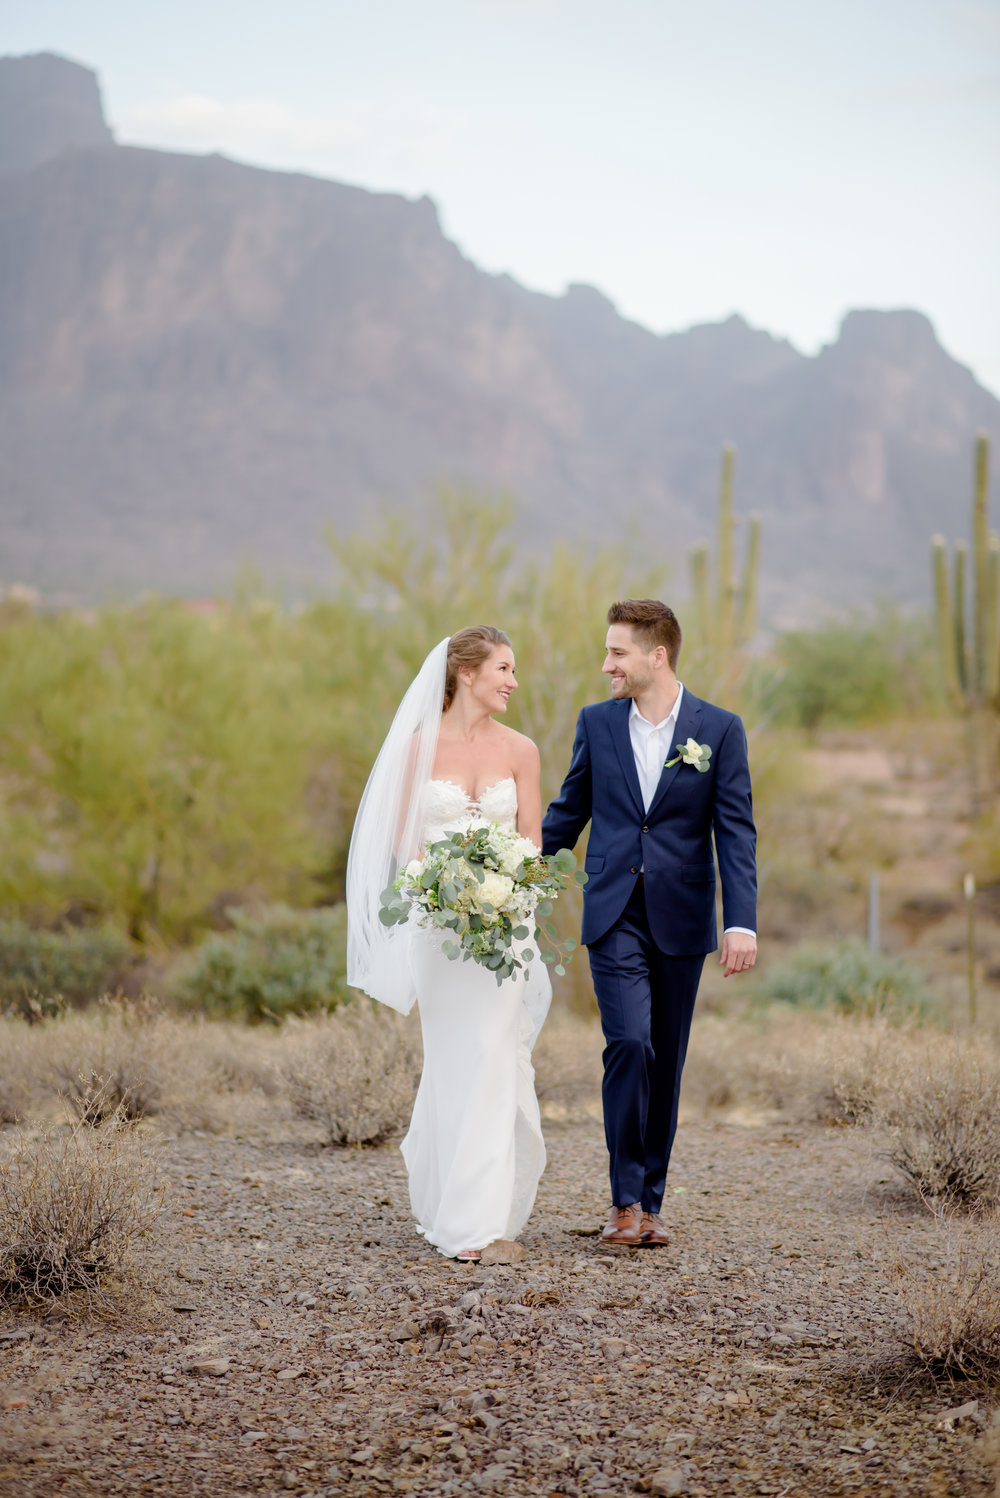 The Paseo Wedding Premiere Destination Arizona Location - www.theamburgeys.com-779.jpg